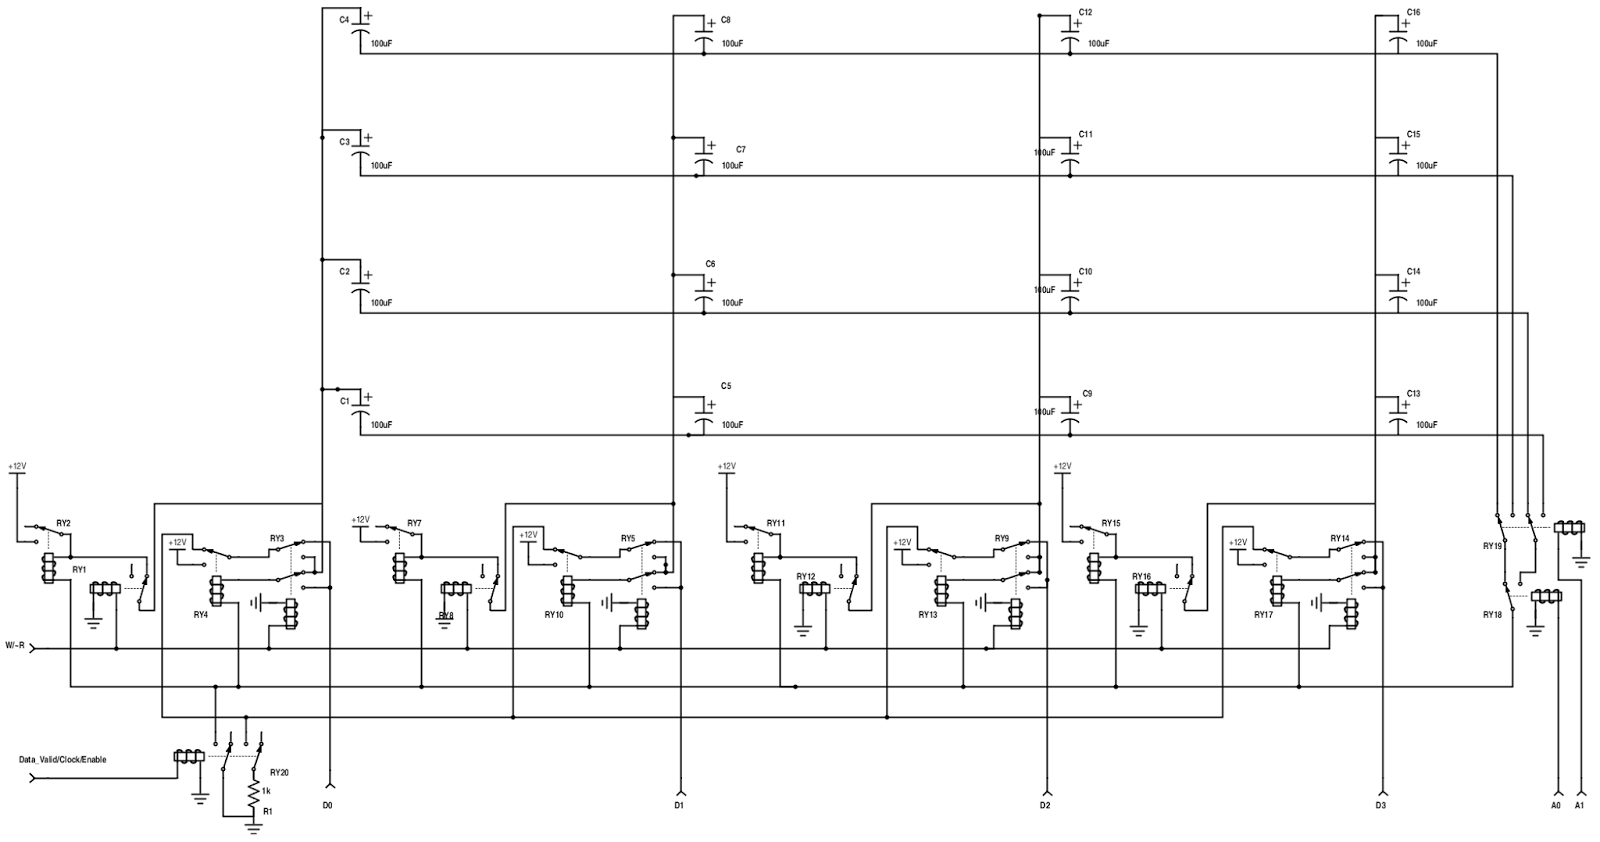 small resolution of this circuit is a 4 x 4 bit example of the design but hopefully you can see how it scales for a 16 bit 128 word memory the above circuit would require